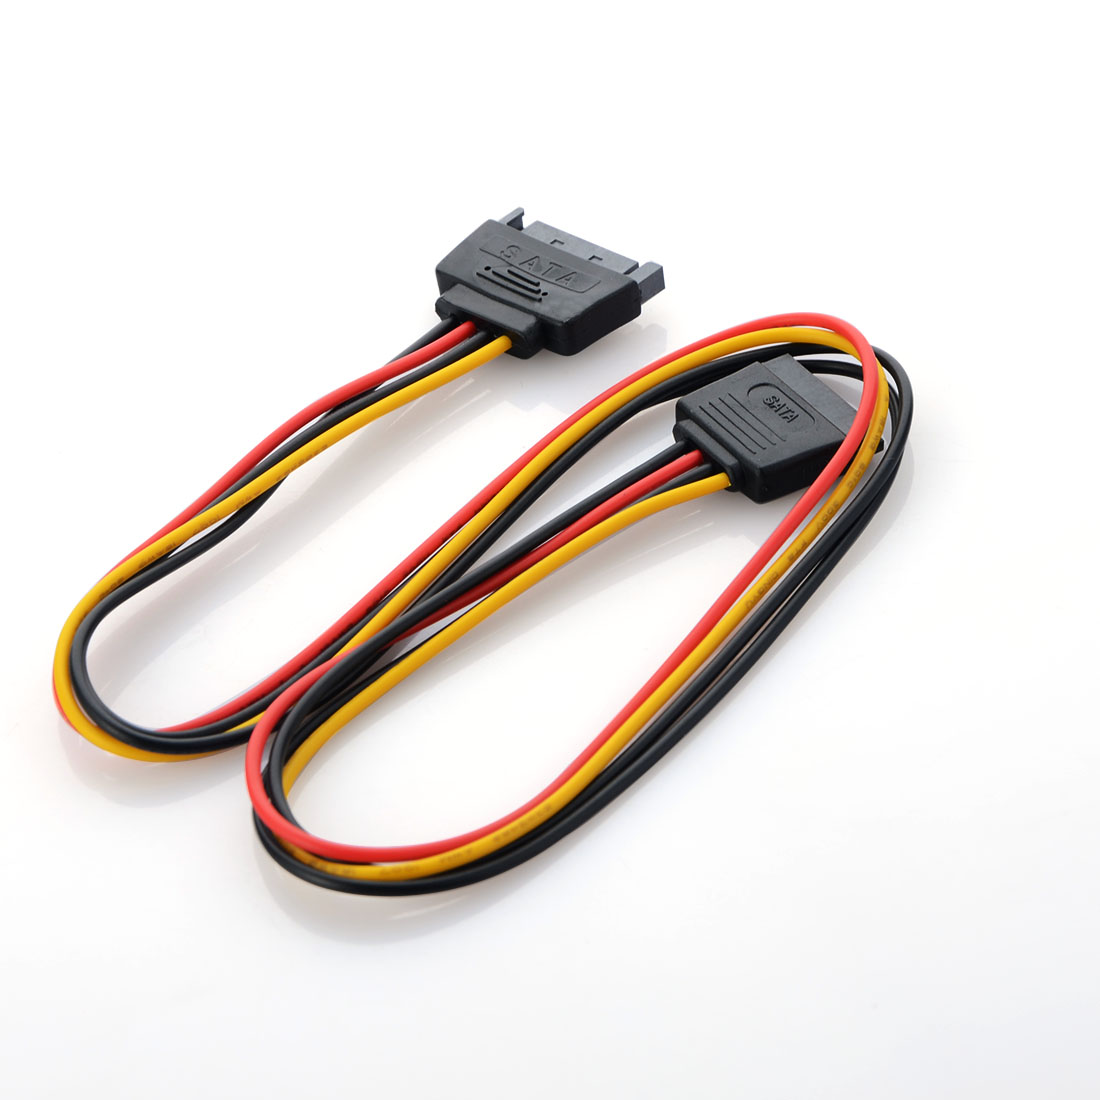 50cm New Power Adapter Cable 15 Pin SATA Male to Dual Molex 4 Pin IDE HDD Female sata 15 pin to type d 4 pin ide serial power cable multicolored 15cm 2 pcs